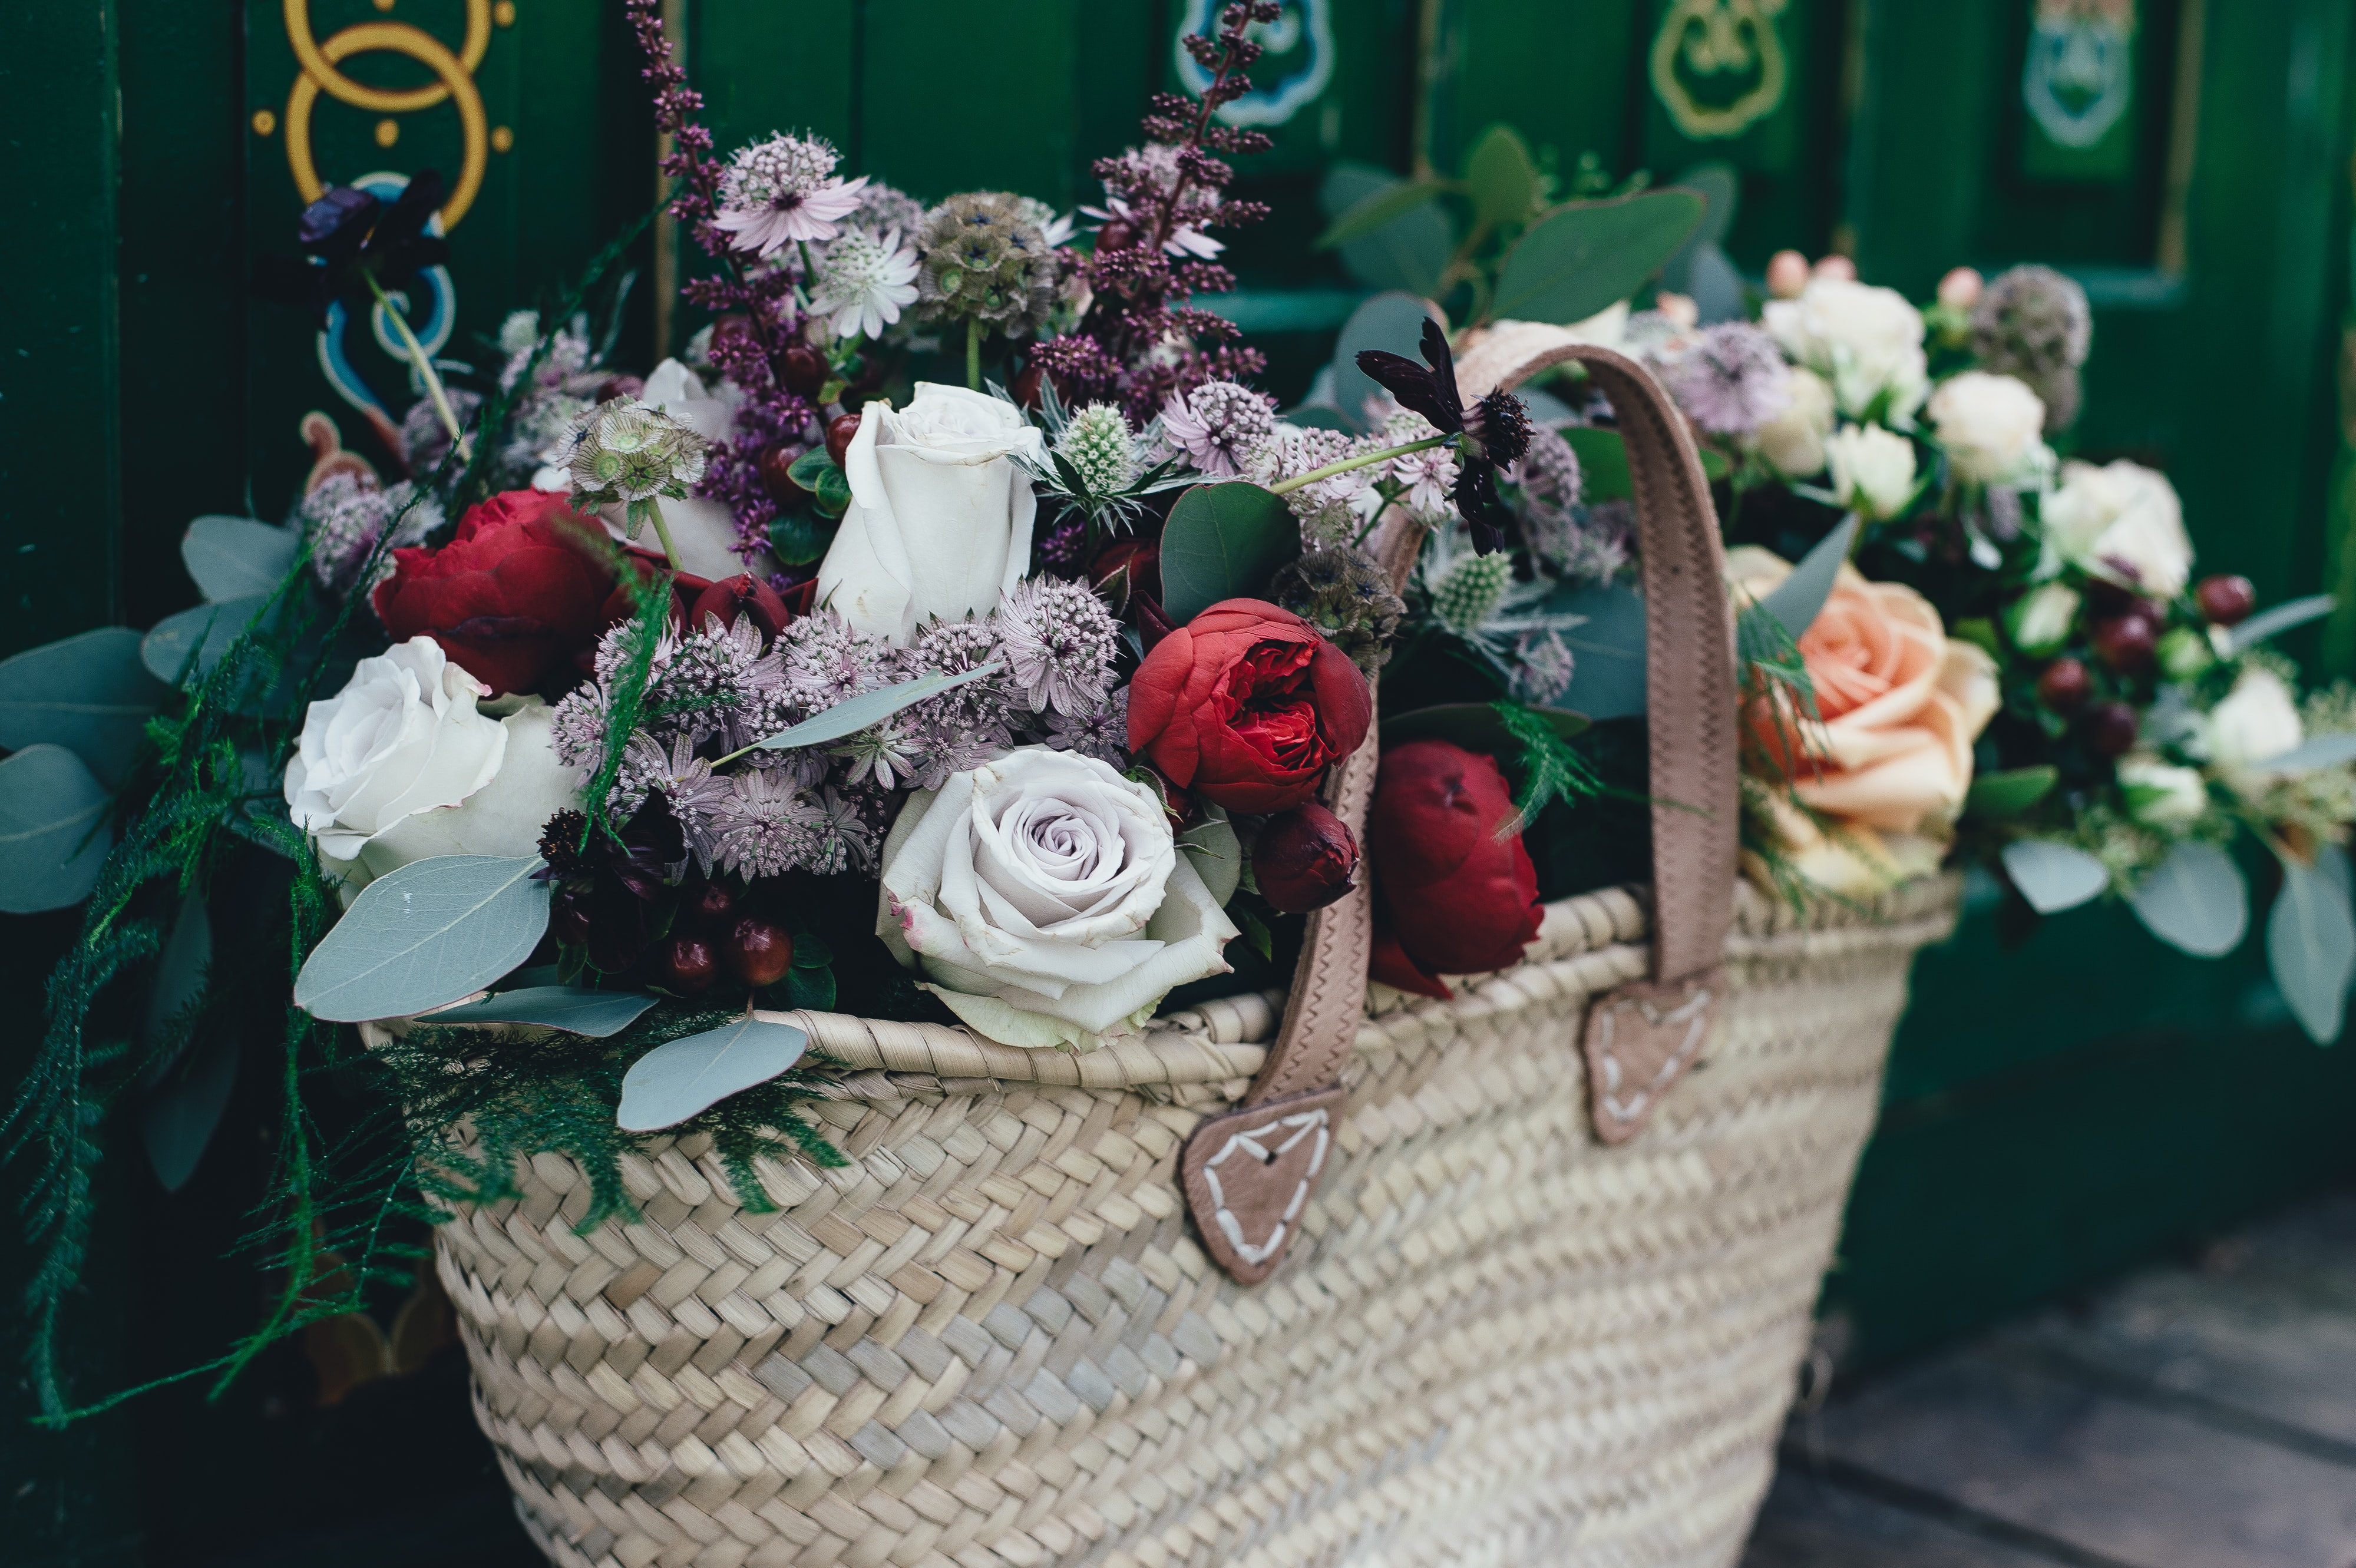 A large basket full of magnificent flowers of various types